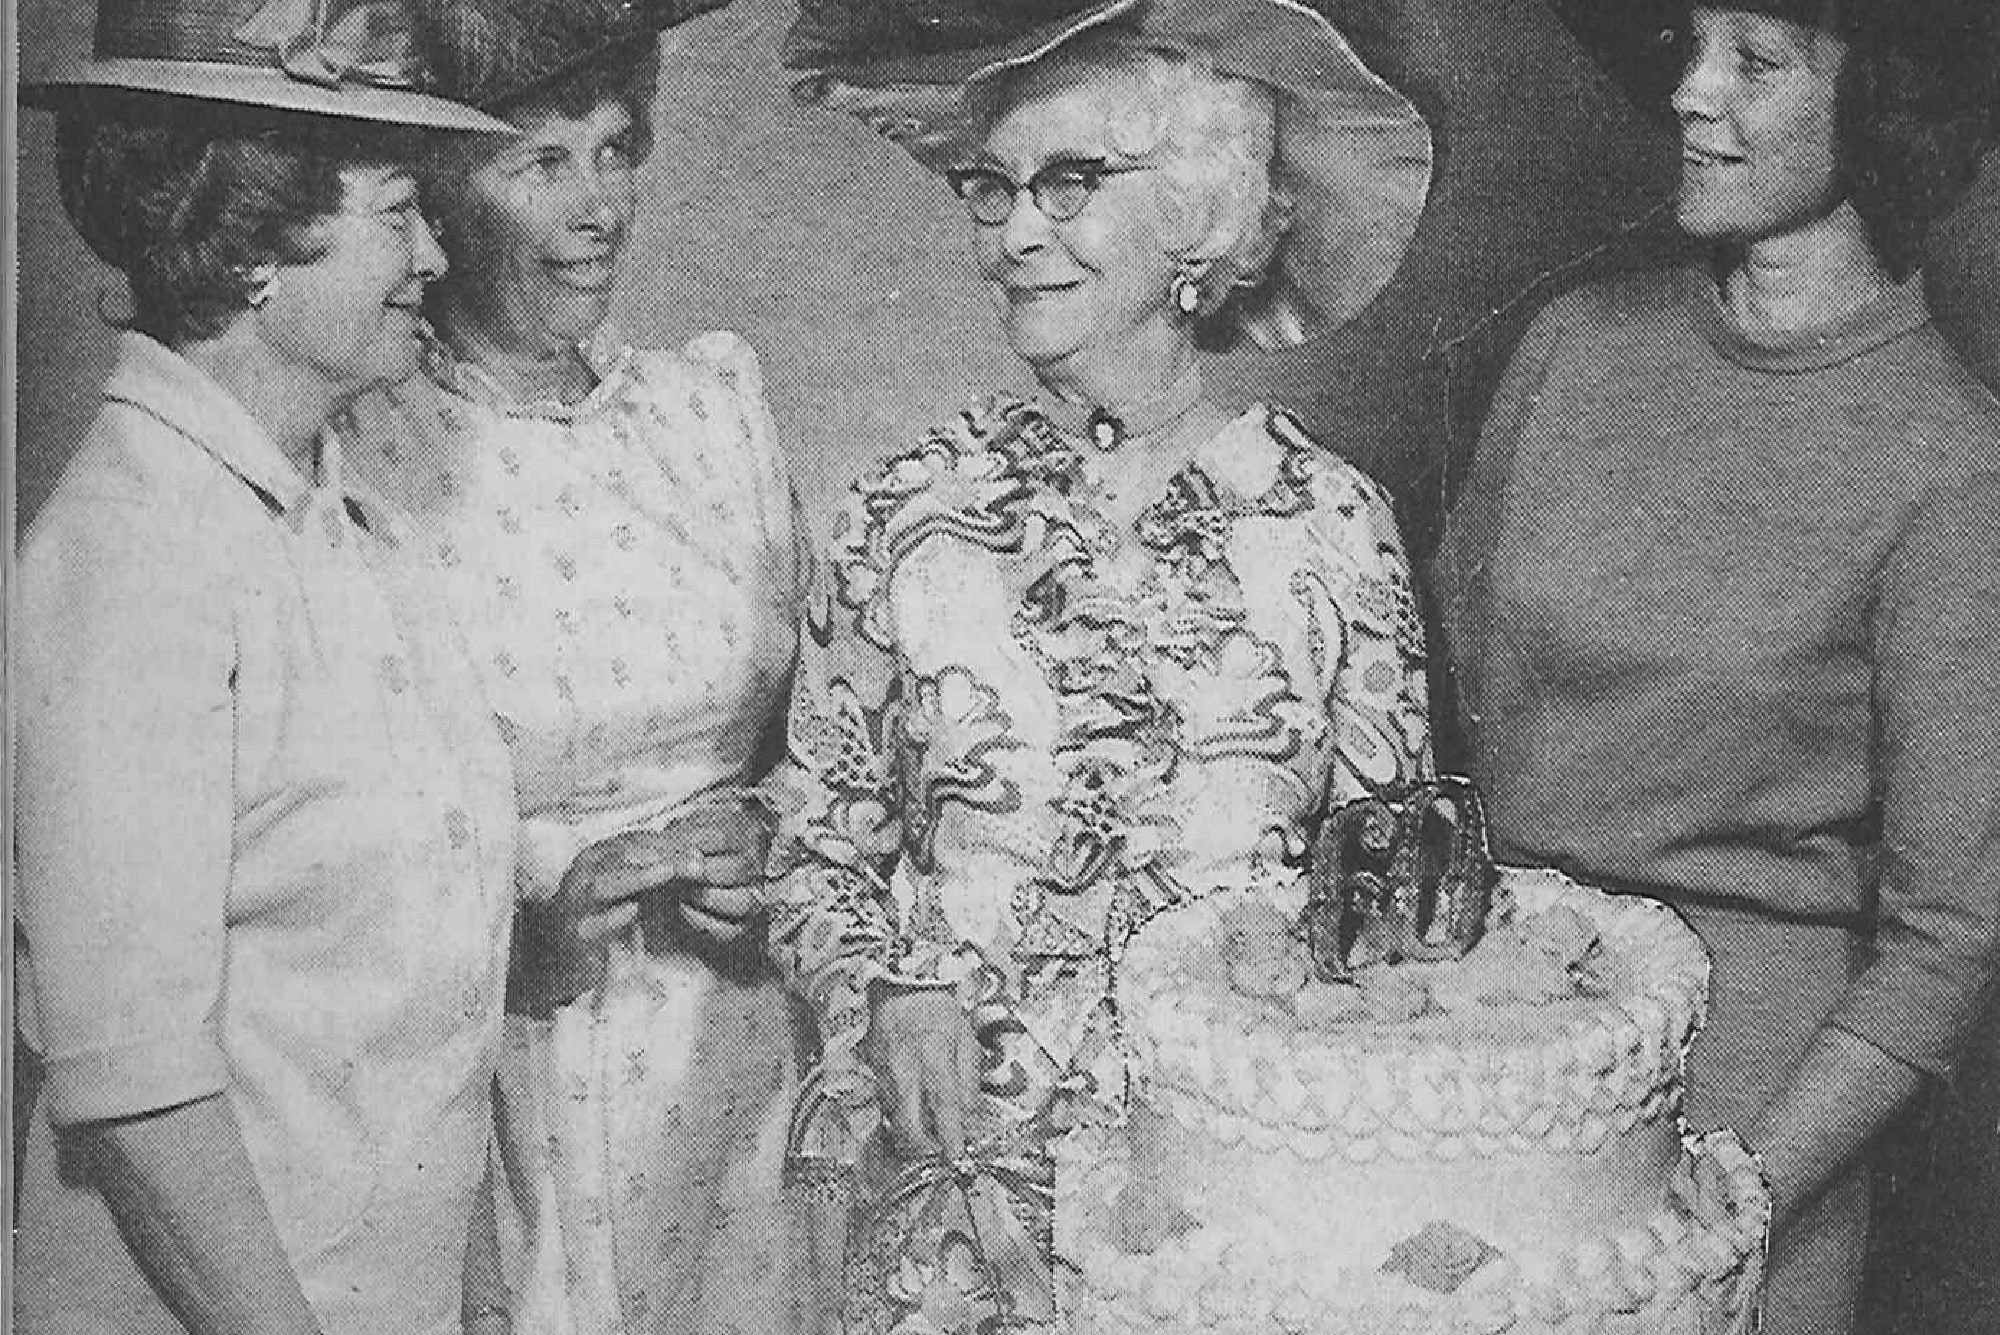 Circle Members celebrated the organization's 60th anniversary in 1971